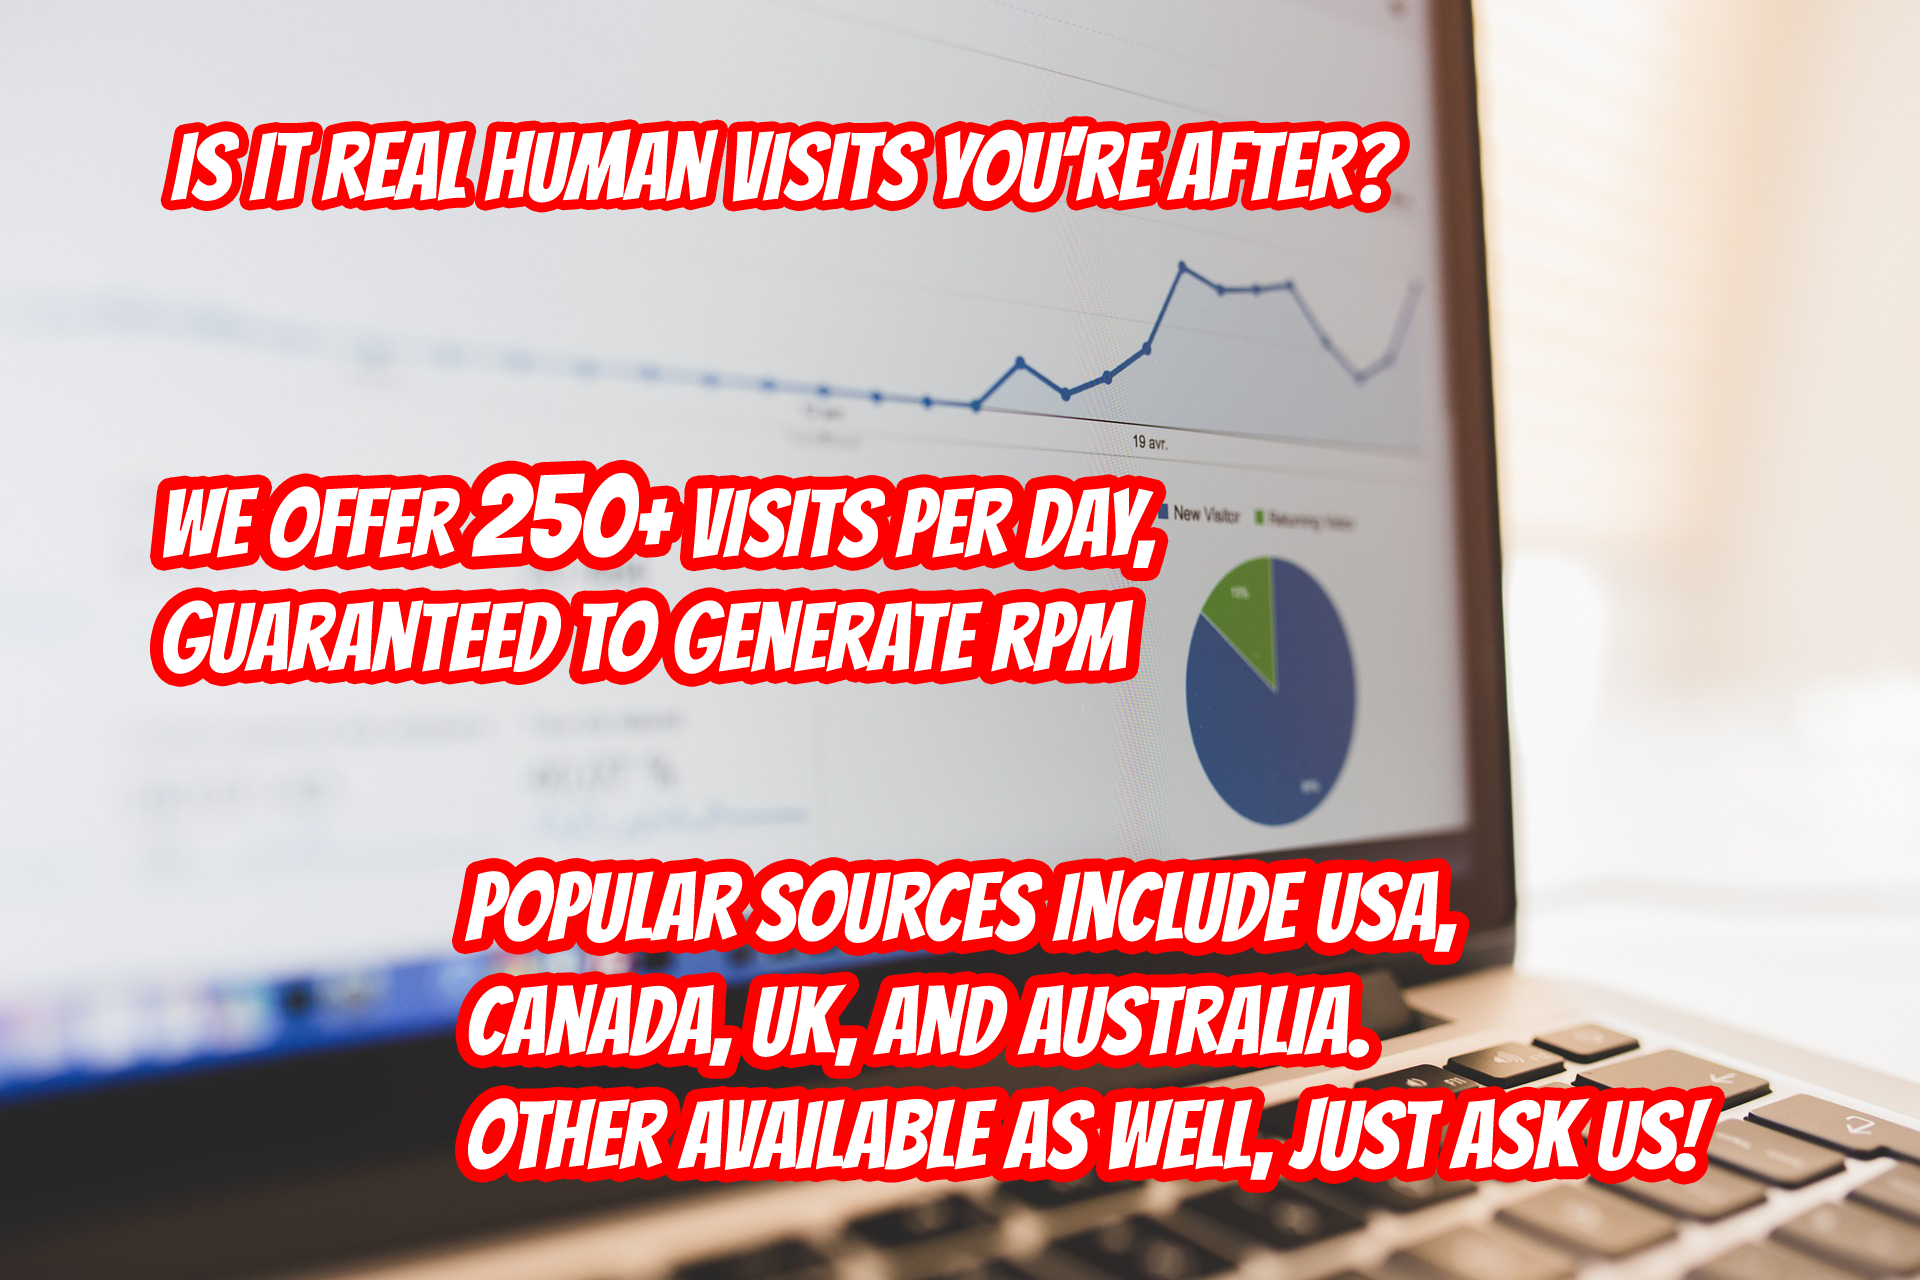 Real human hits to your website. No bots guaranteed 250+ visits per day for a whole month.